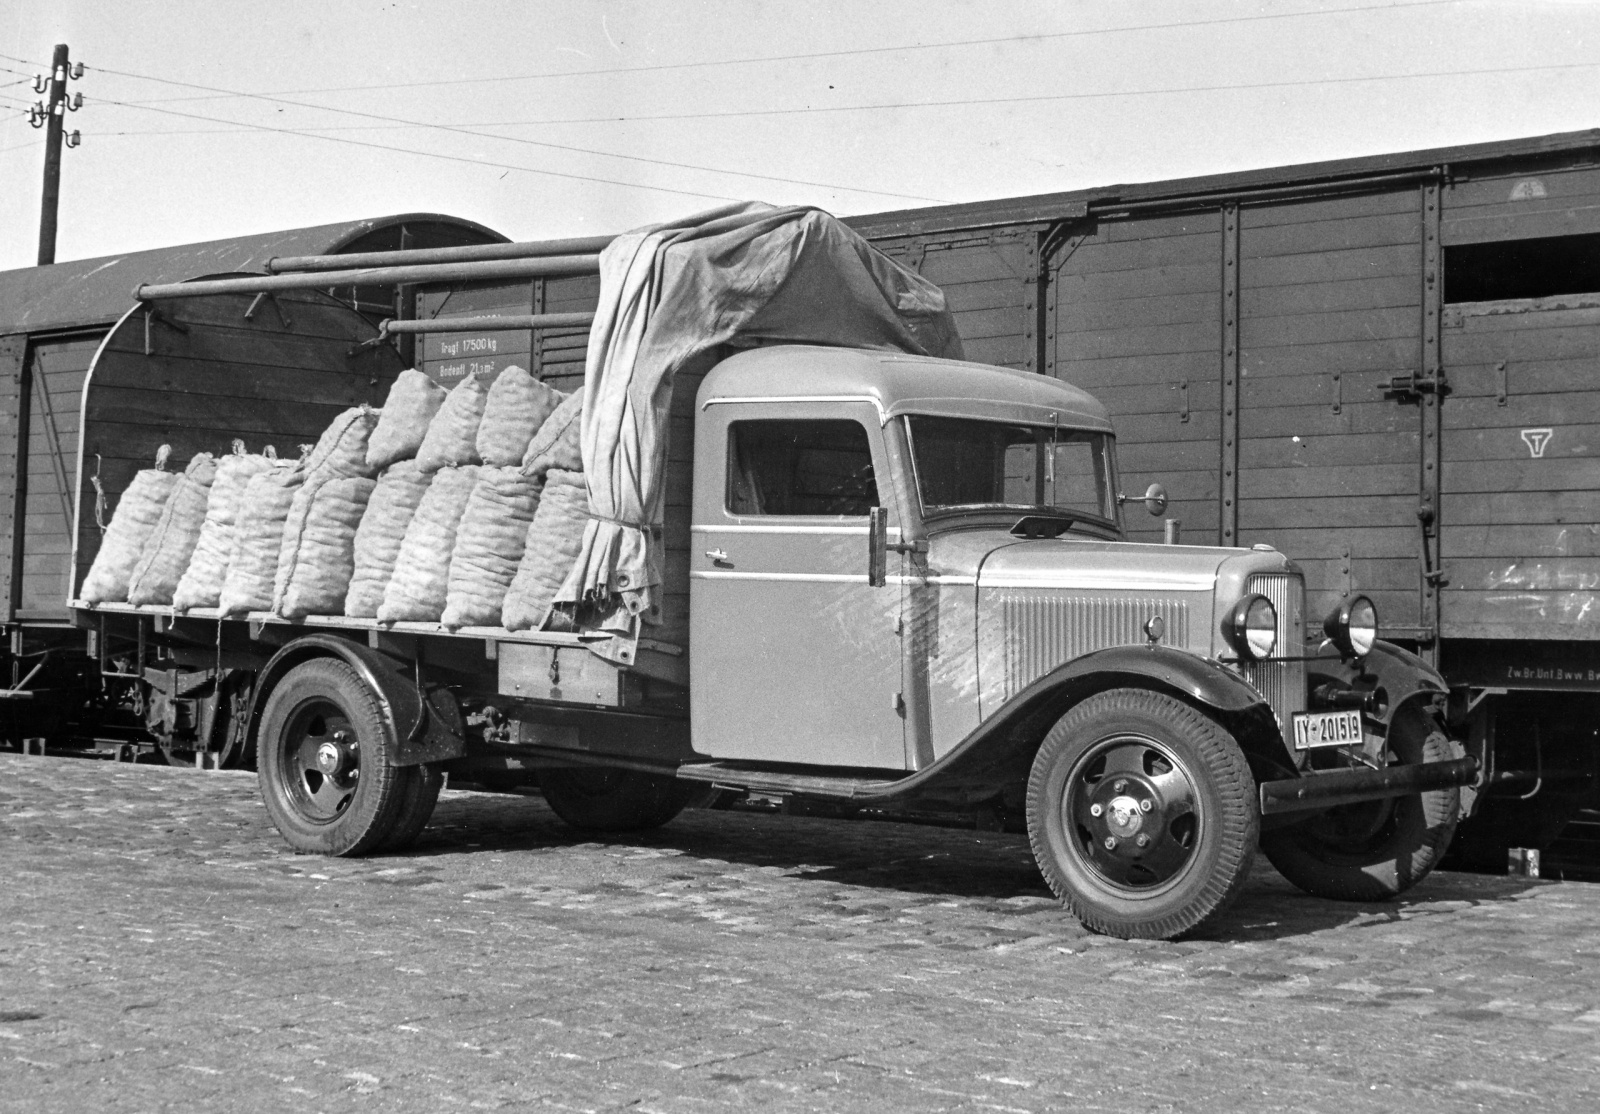 Ford Modell BB (1937) - Foto eines Ford LKW/Bus-Modells